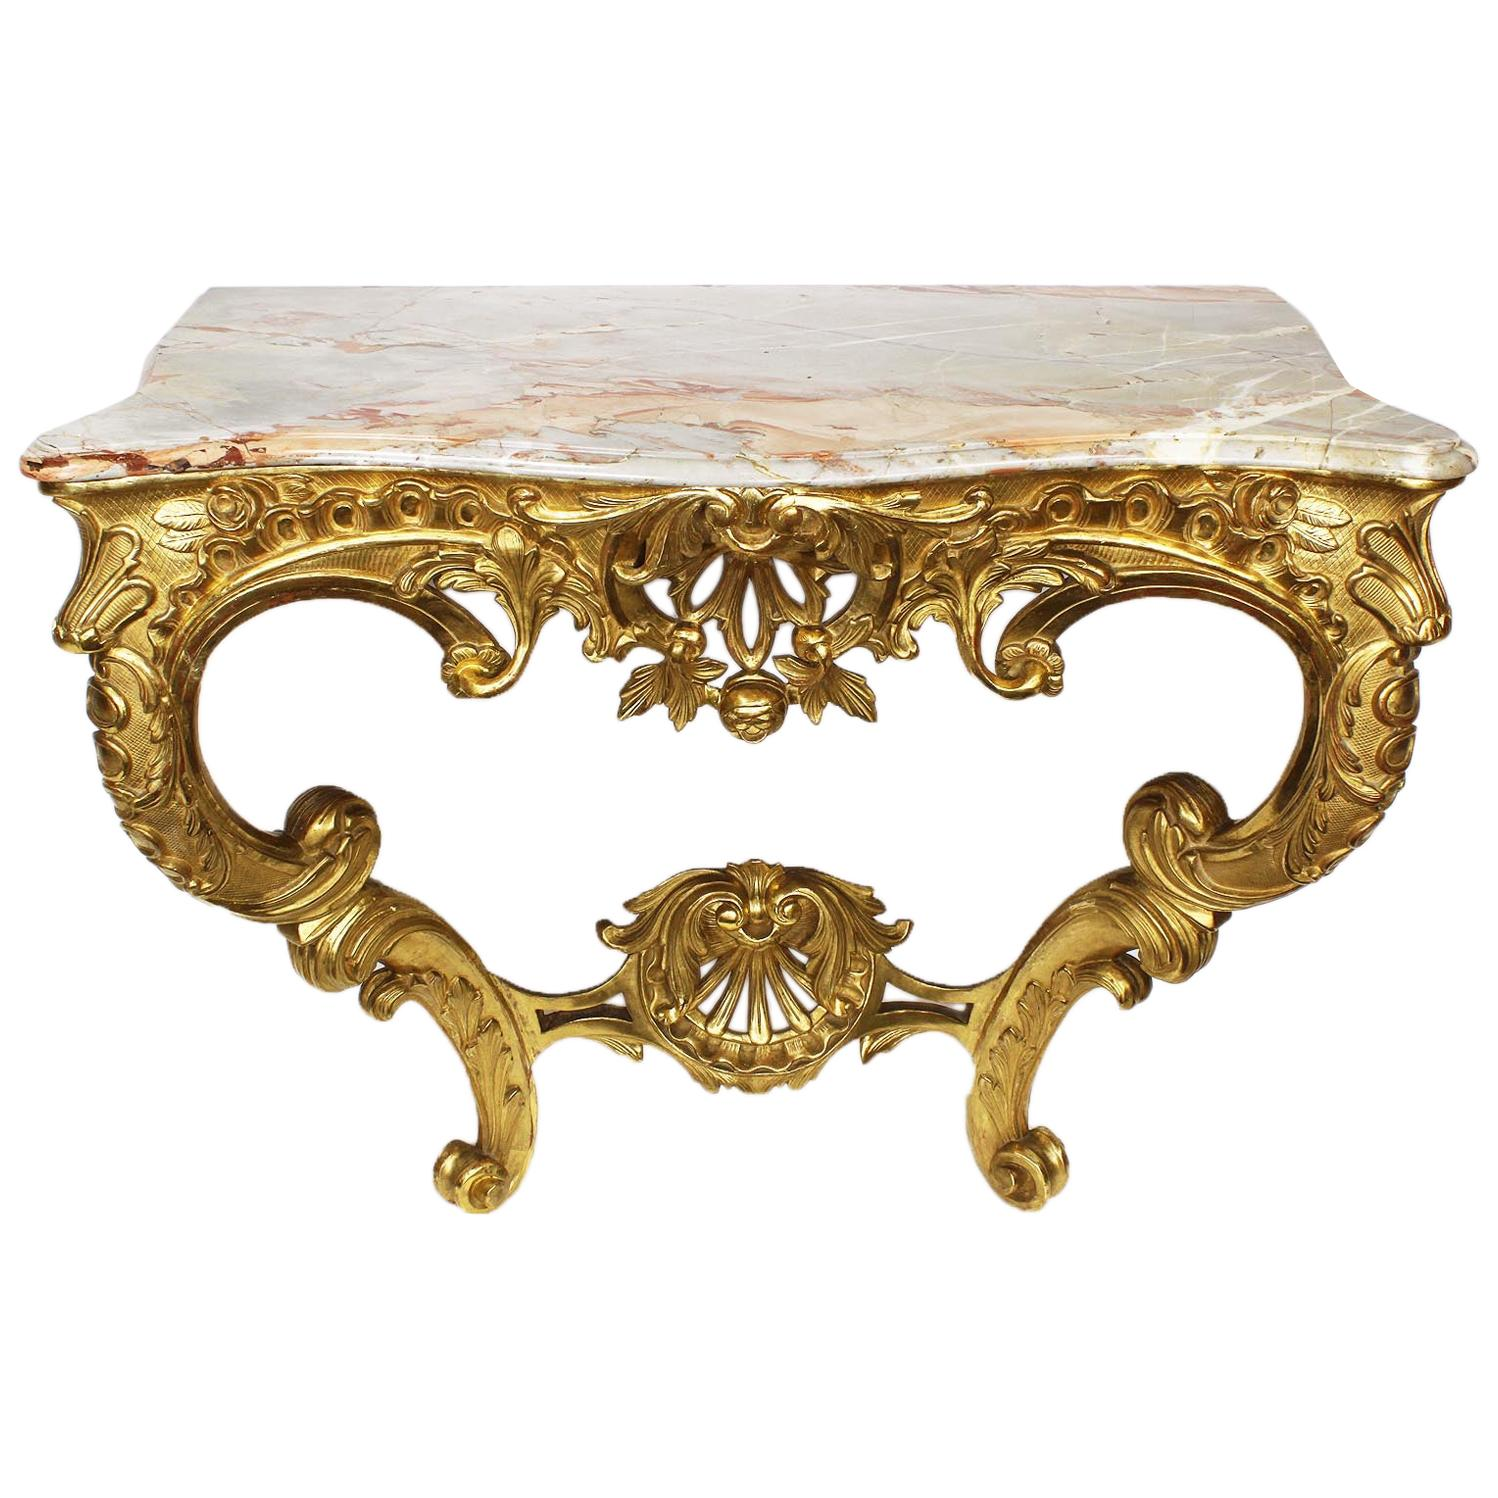 French 19th Century Louis XV Style Giltwood Carved Wall Mounting Console Table